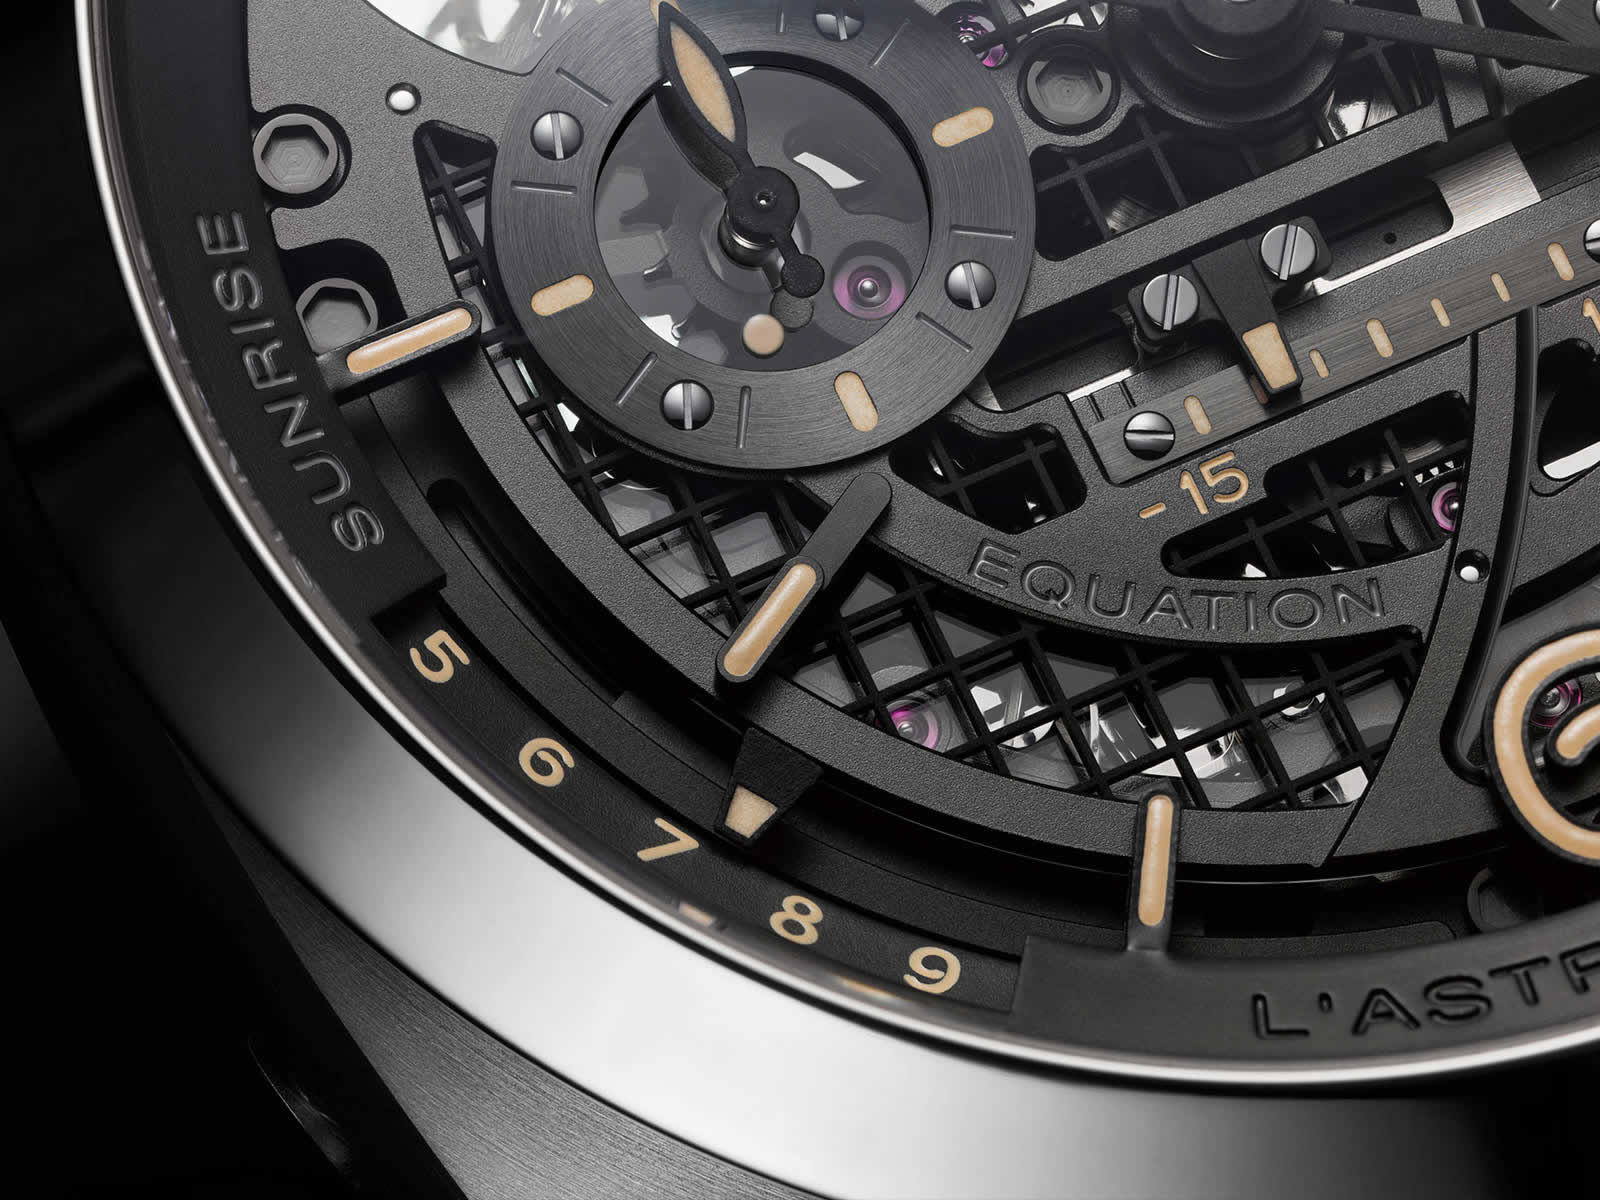 Panerai-L-Astronomo-Luminor-1950-Tourbillon-Moon-Phases-Equation-of-Time-Gmt-Pam00920-4.jpg